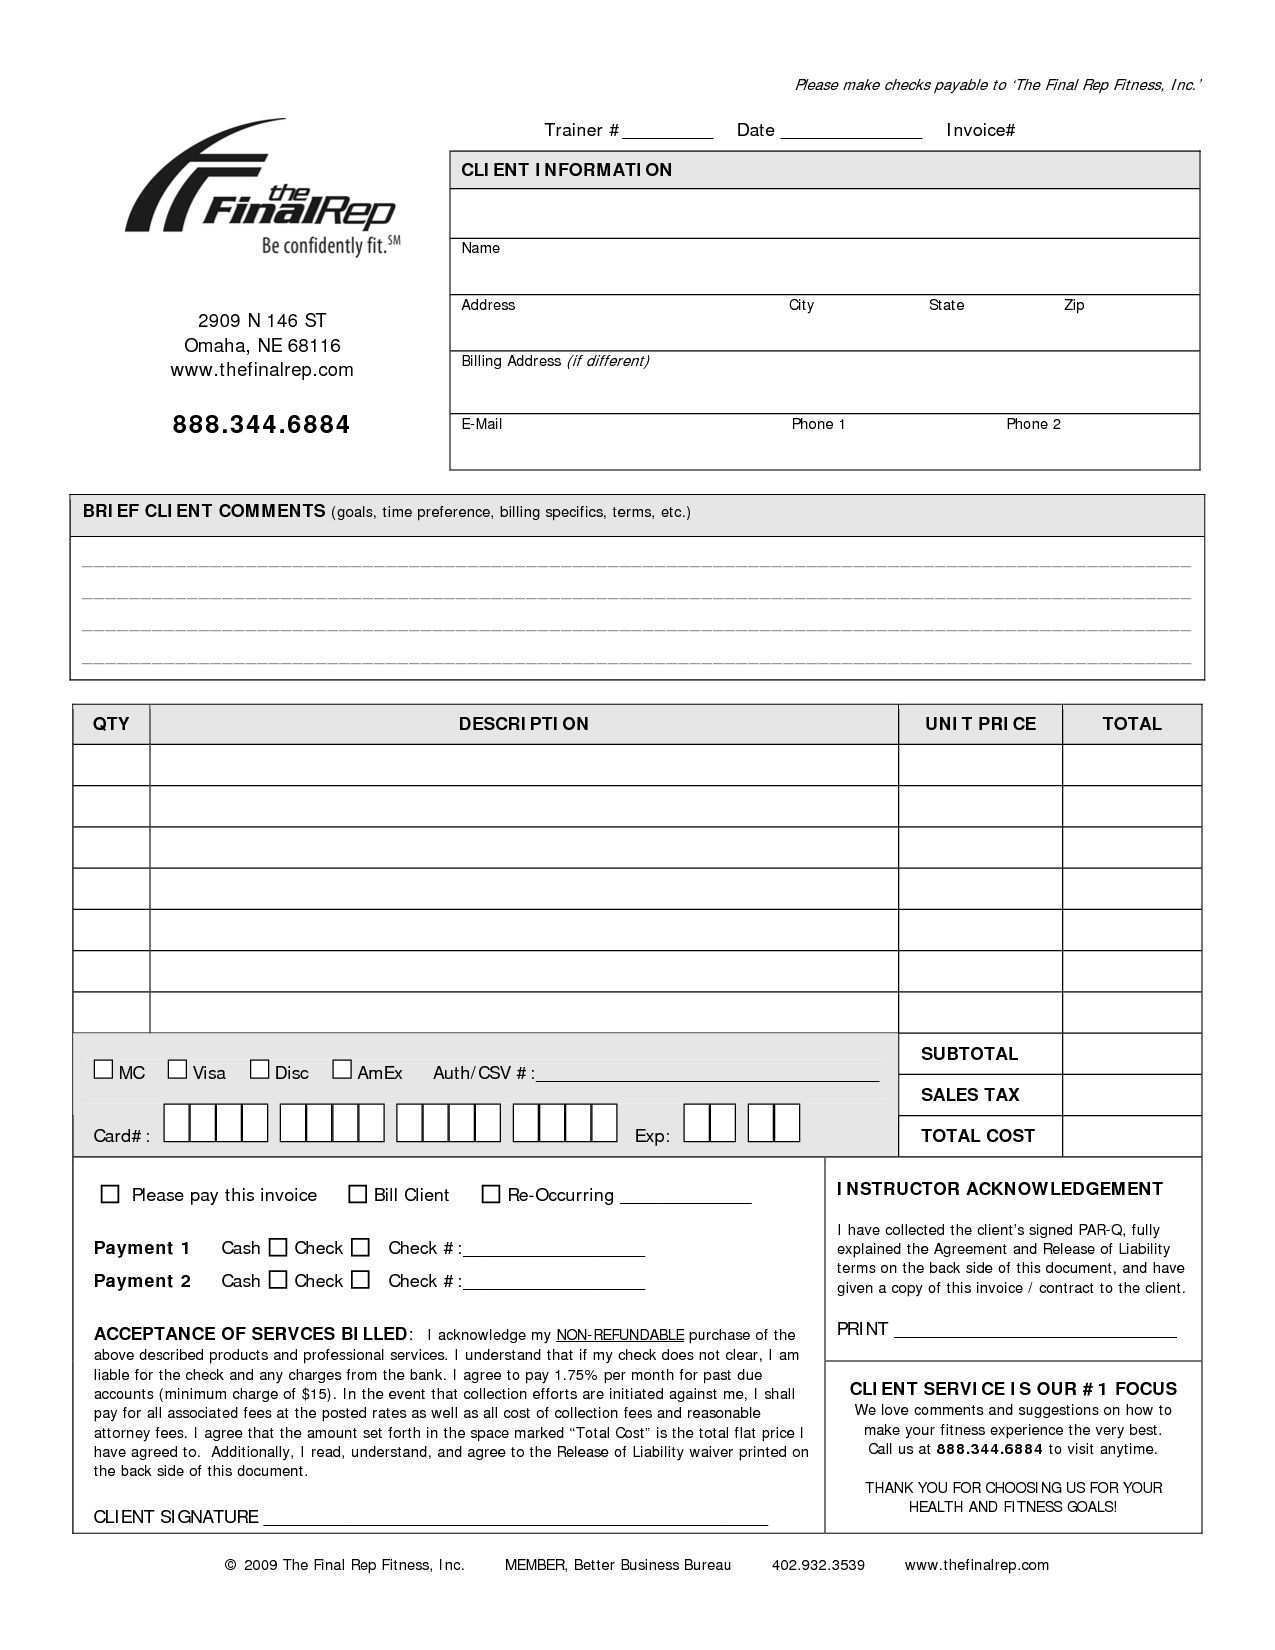 61 Adding Personal Consulting Invoice Template For Ms Word